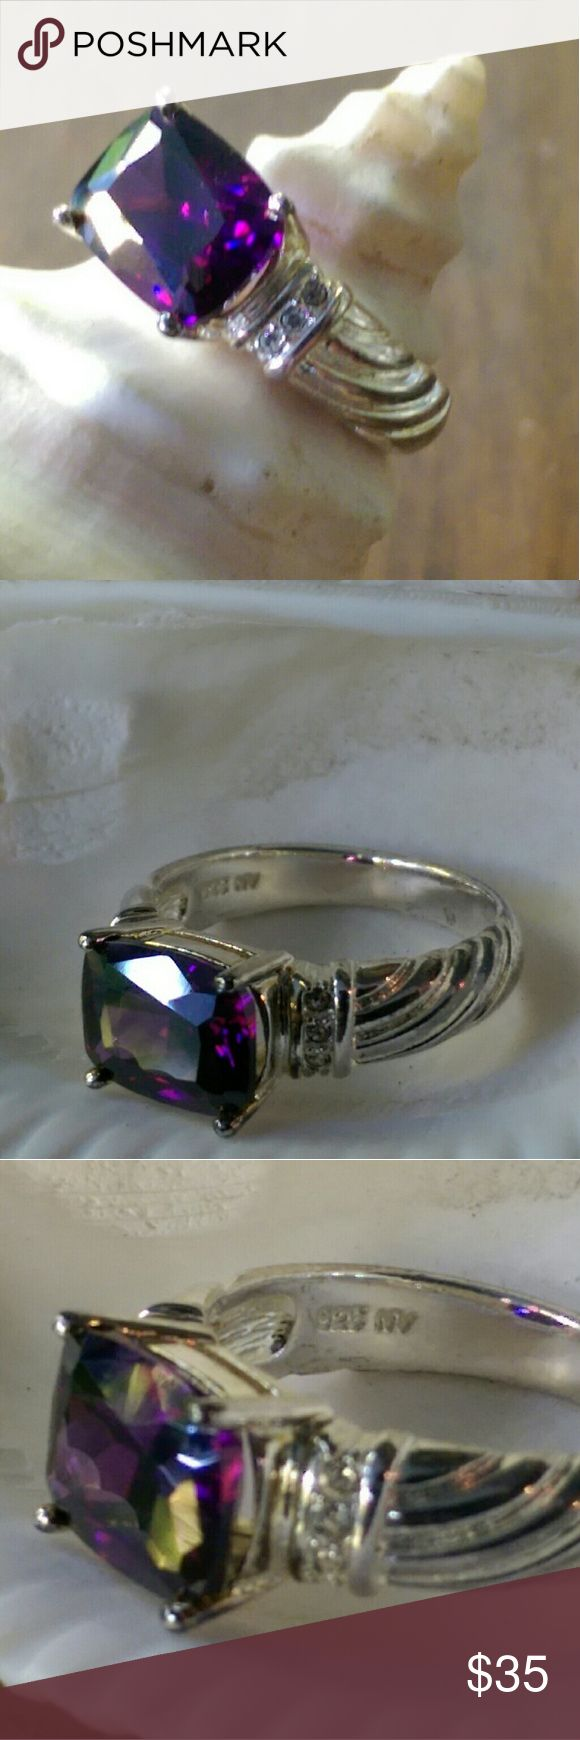 Vintage Avon  sterling silver amethyst ring size 8 Gorgeous ring.!! Sterling silver with amethyst  center and crystal accents . Size 8.  Never worn. Marked 925. Comes with original box.  Ring from year 2003. Original price unknown. Ring total wt 4 Grams. The box is crushed & tattered , but ring is perfect. We love this ring! Avon Jewelry Rings